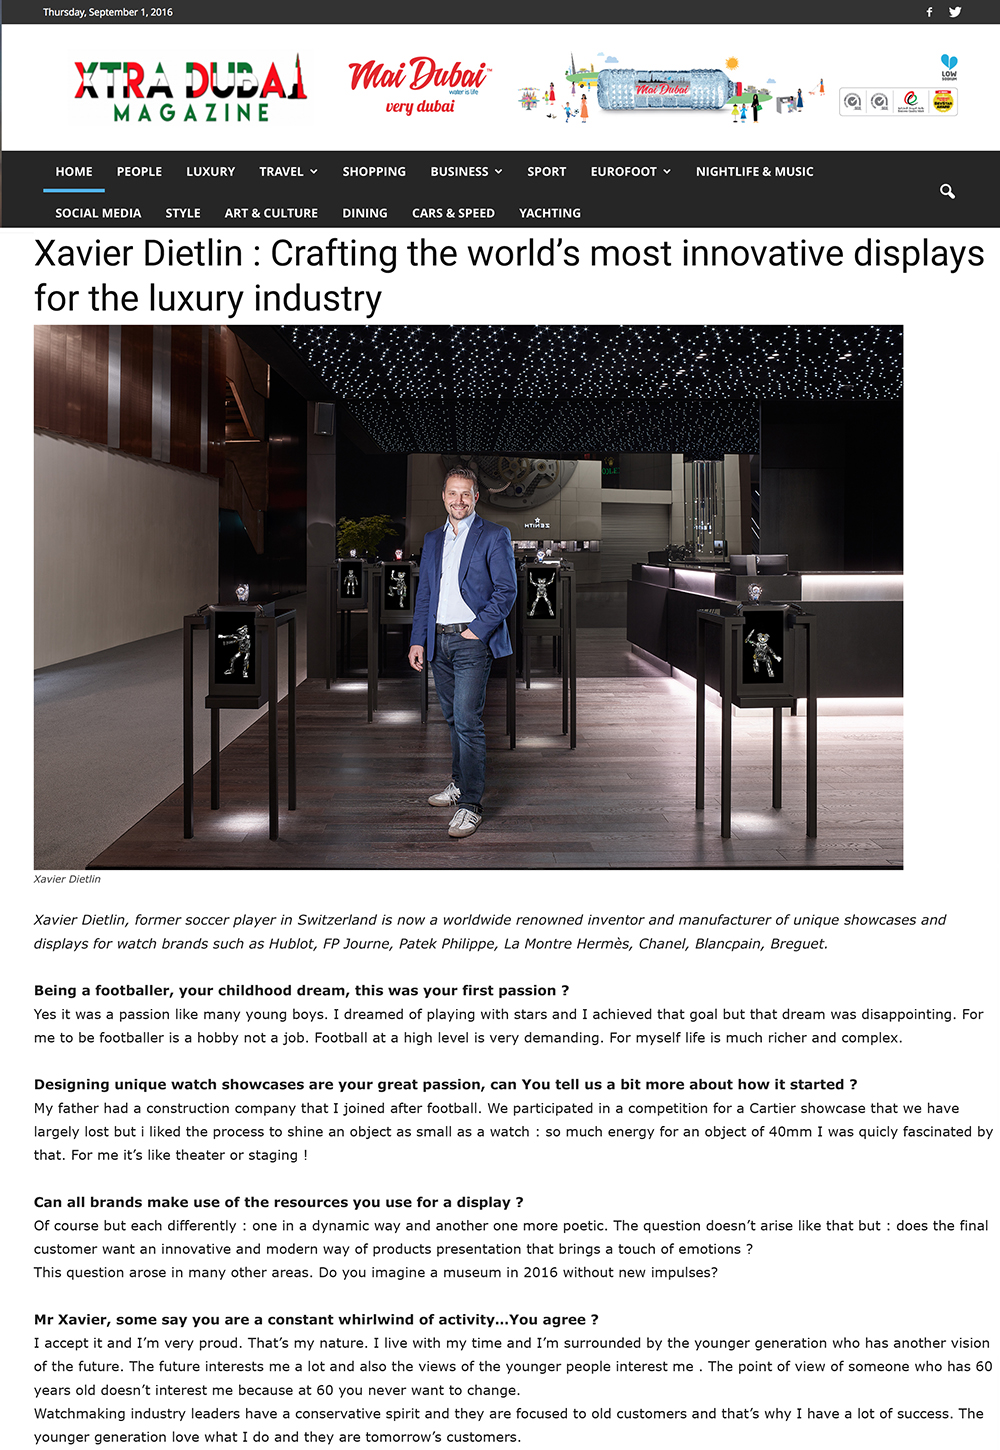 Xtra Dubai Magazine : Xavier Dietlin : Crafting the world's most innovative displays for the luxury industry.